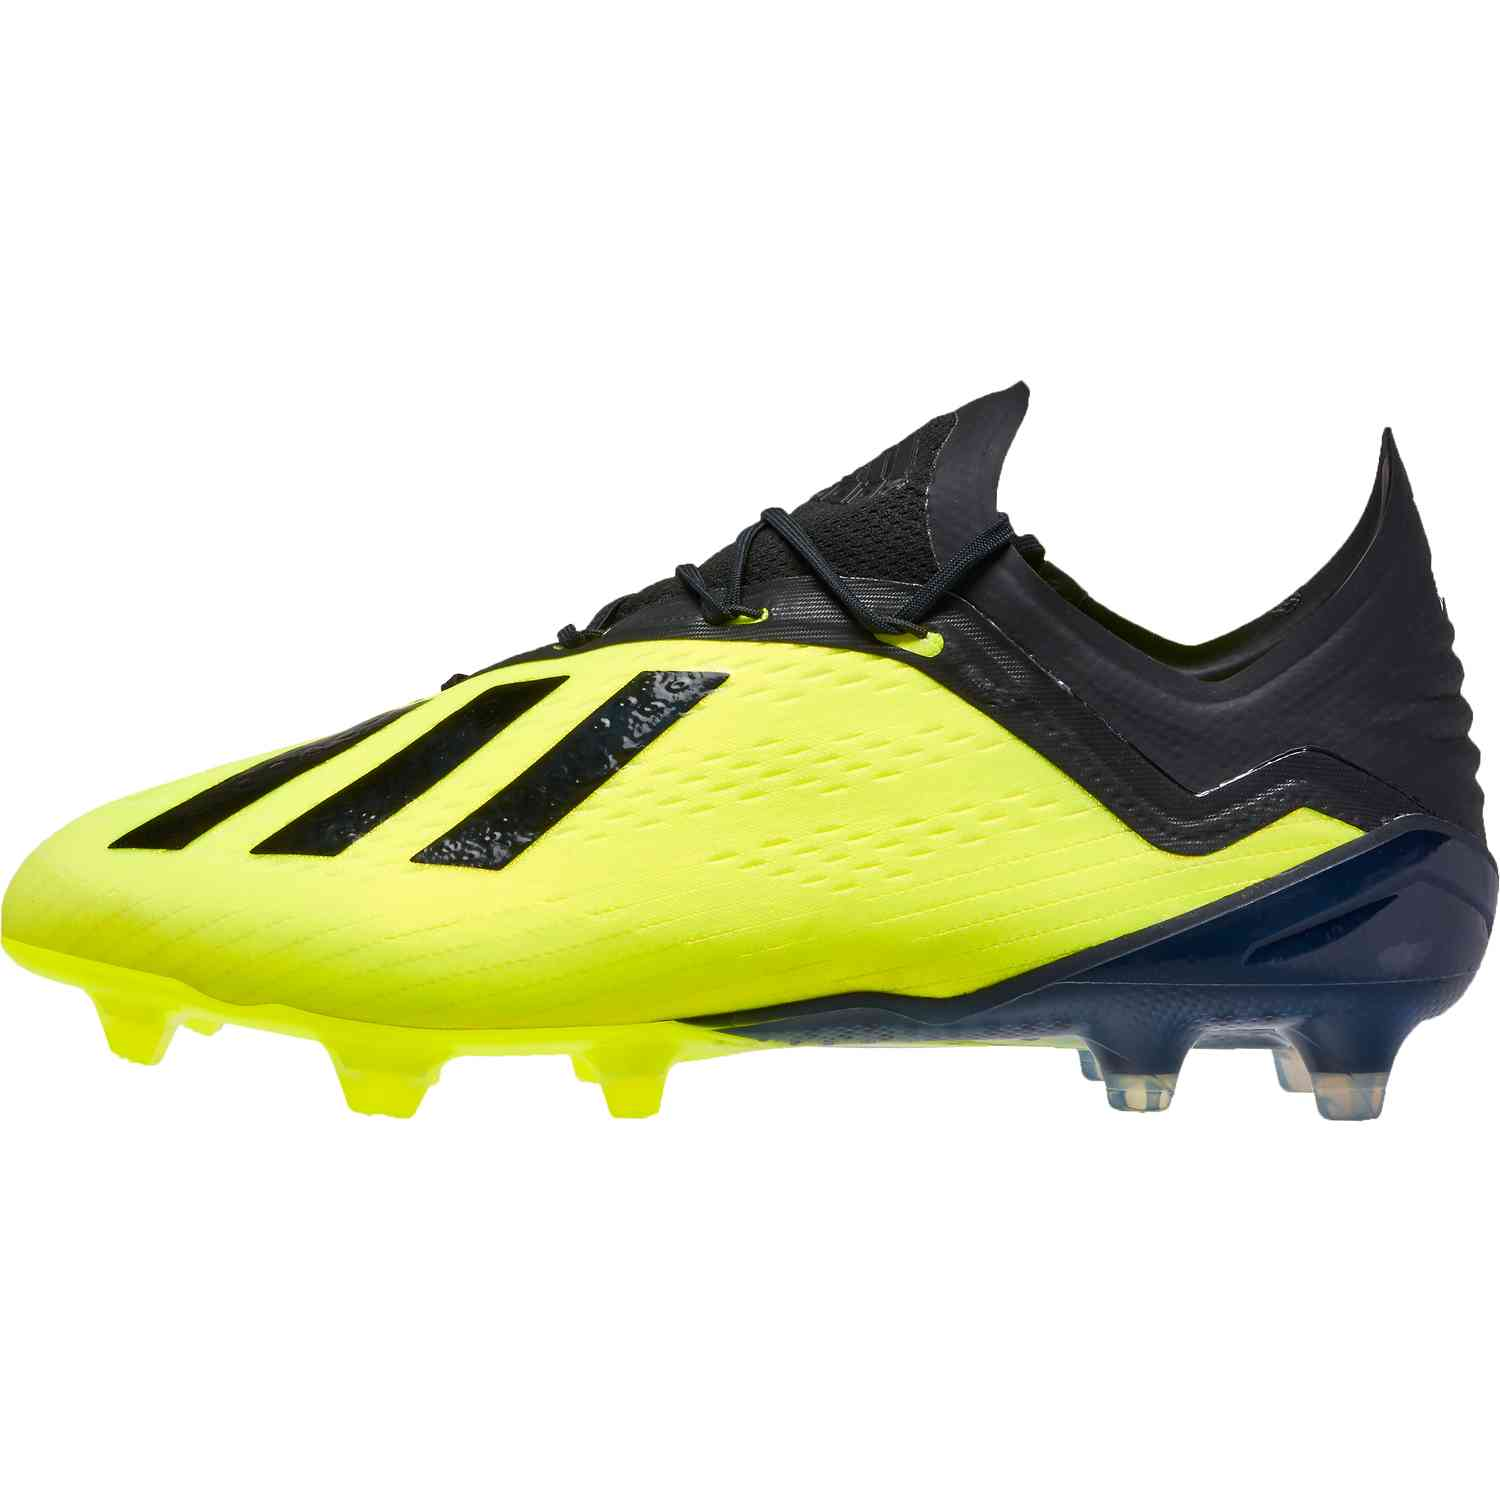 official photos c50b1 3943b adidas X 18.1 FG Soccer Cleat- Solar Yellow/Black/White | Soccer Unlimited  USA